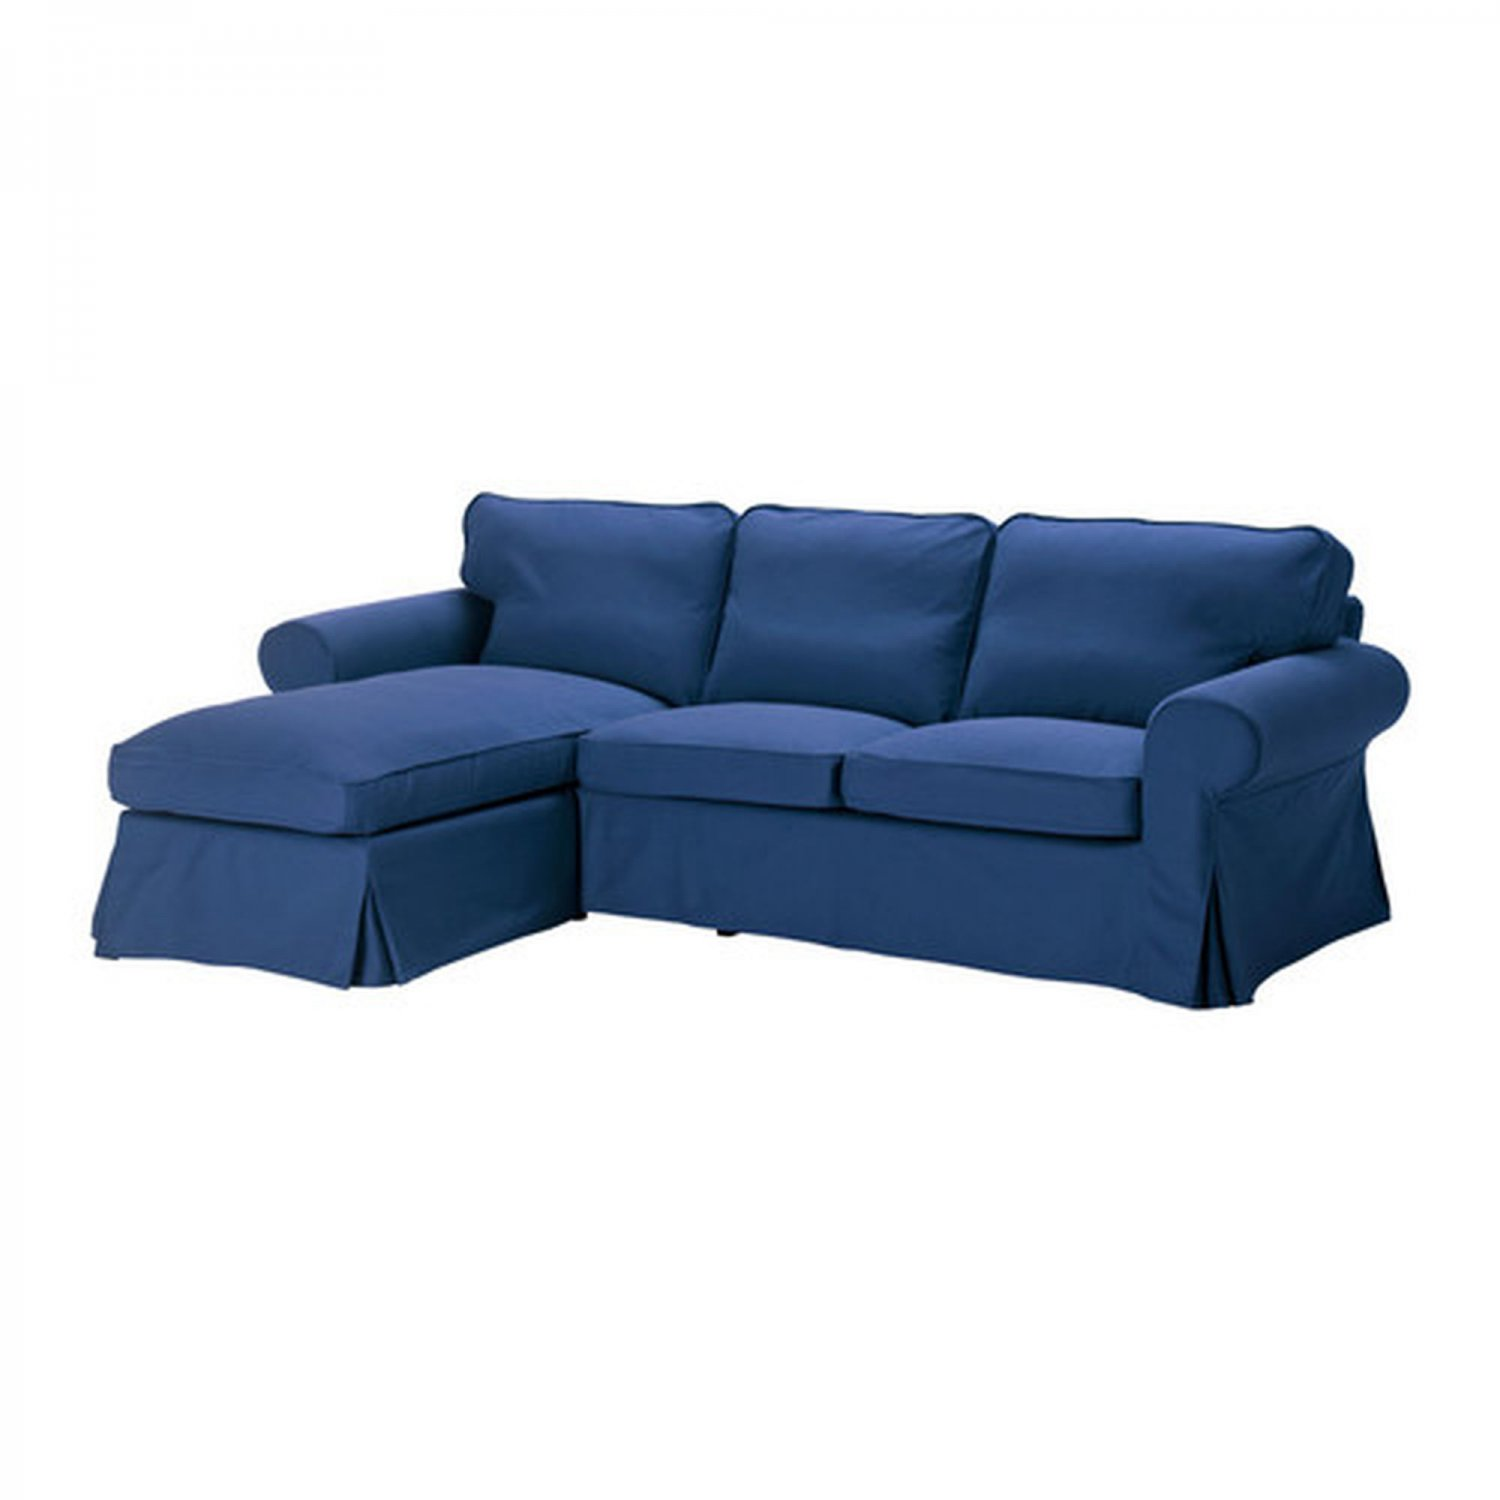 Ikea ektorp loveseat with chaise lounge cover slipcover for Chaise longue lounge